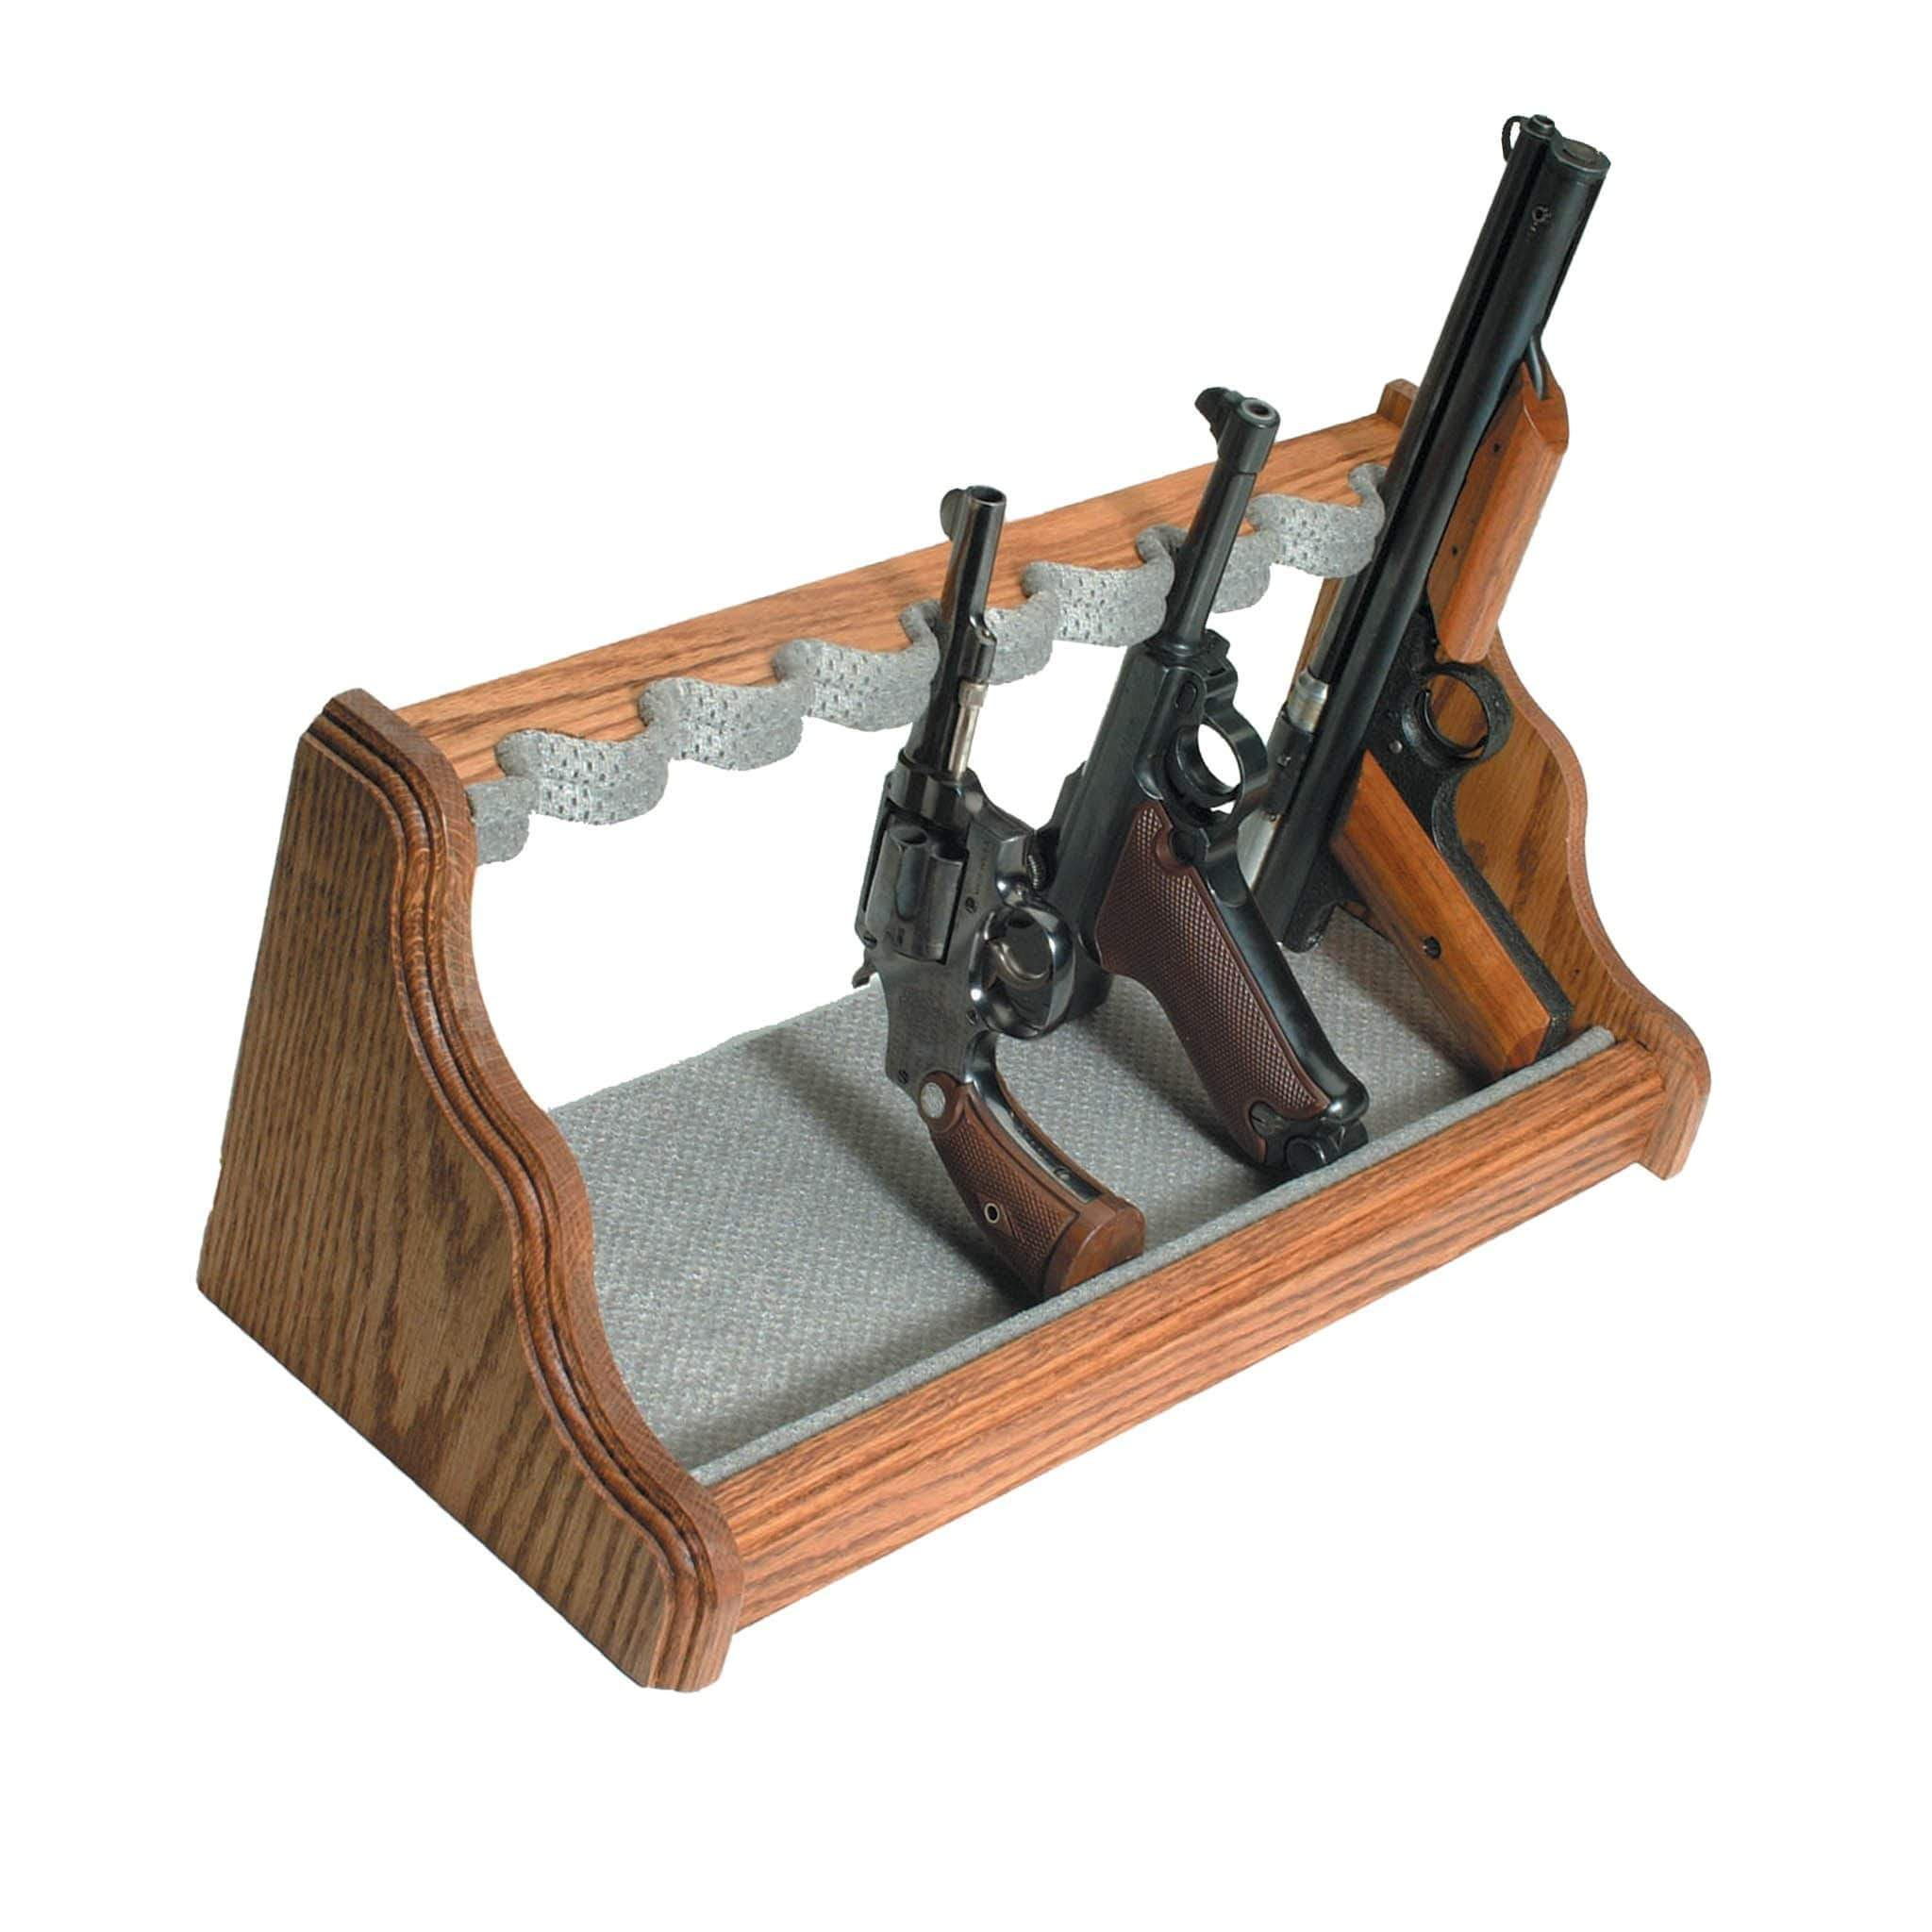 OAK PISTOL RACK